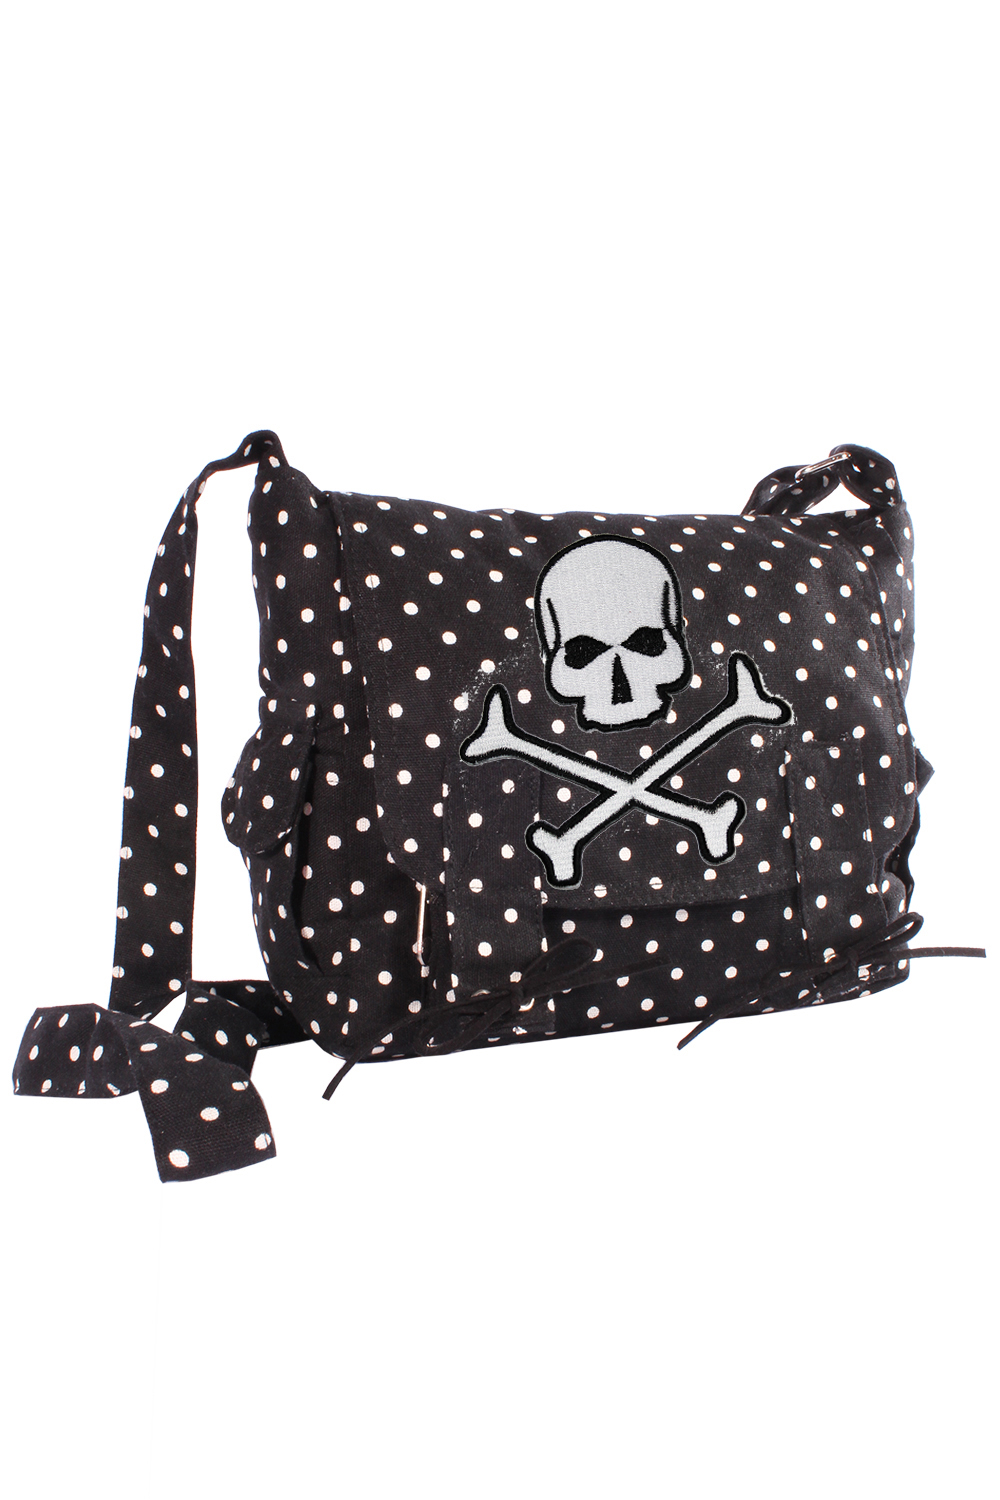 Skull pin up POLKA DOTS Totenkopf rockabilly Military Handtasche schwarz